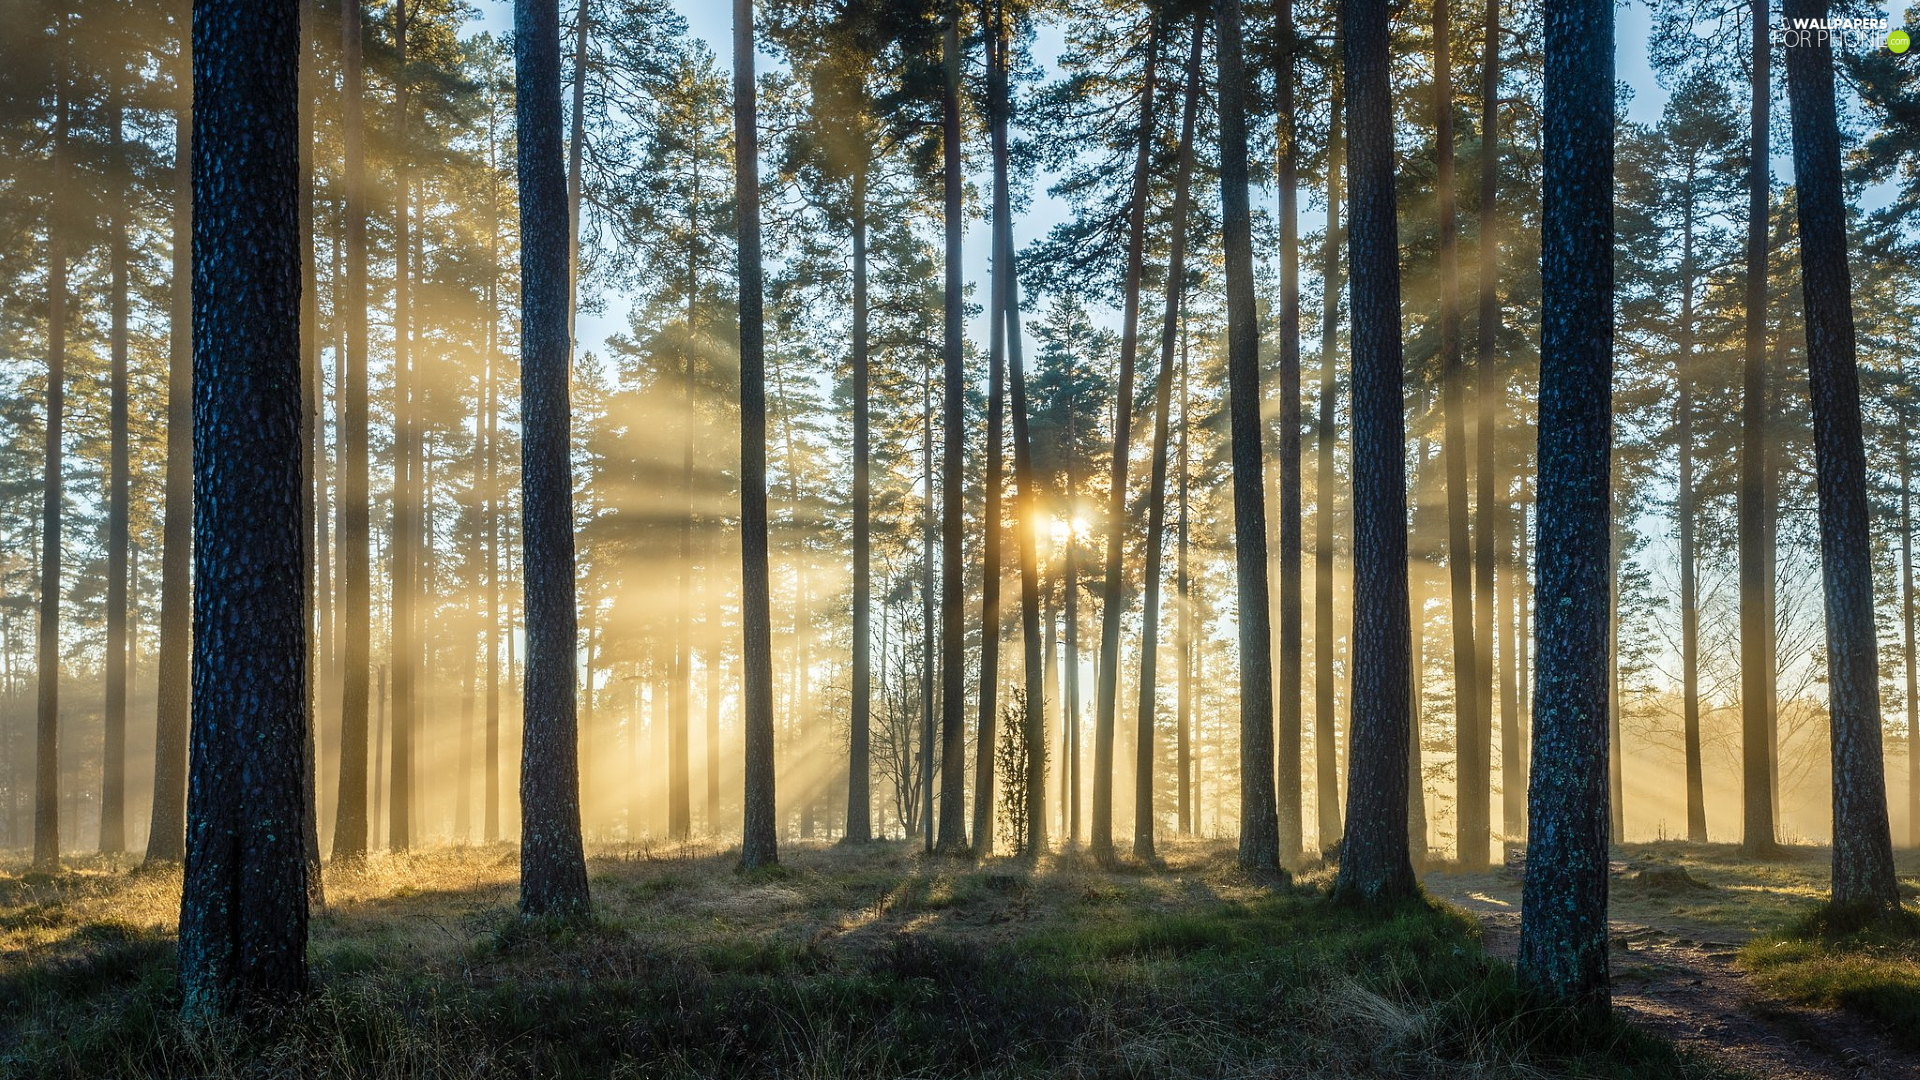 rays of the Sun, light breaking through sky, trees, viewes, forest